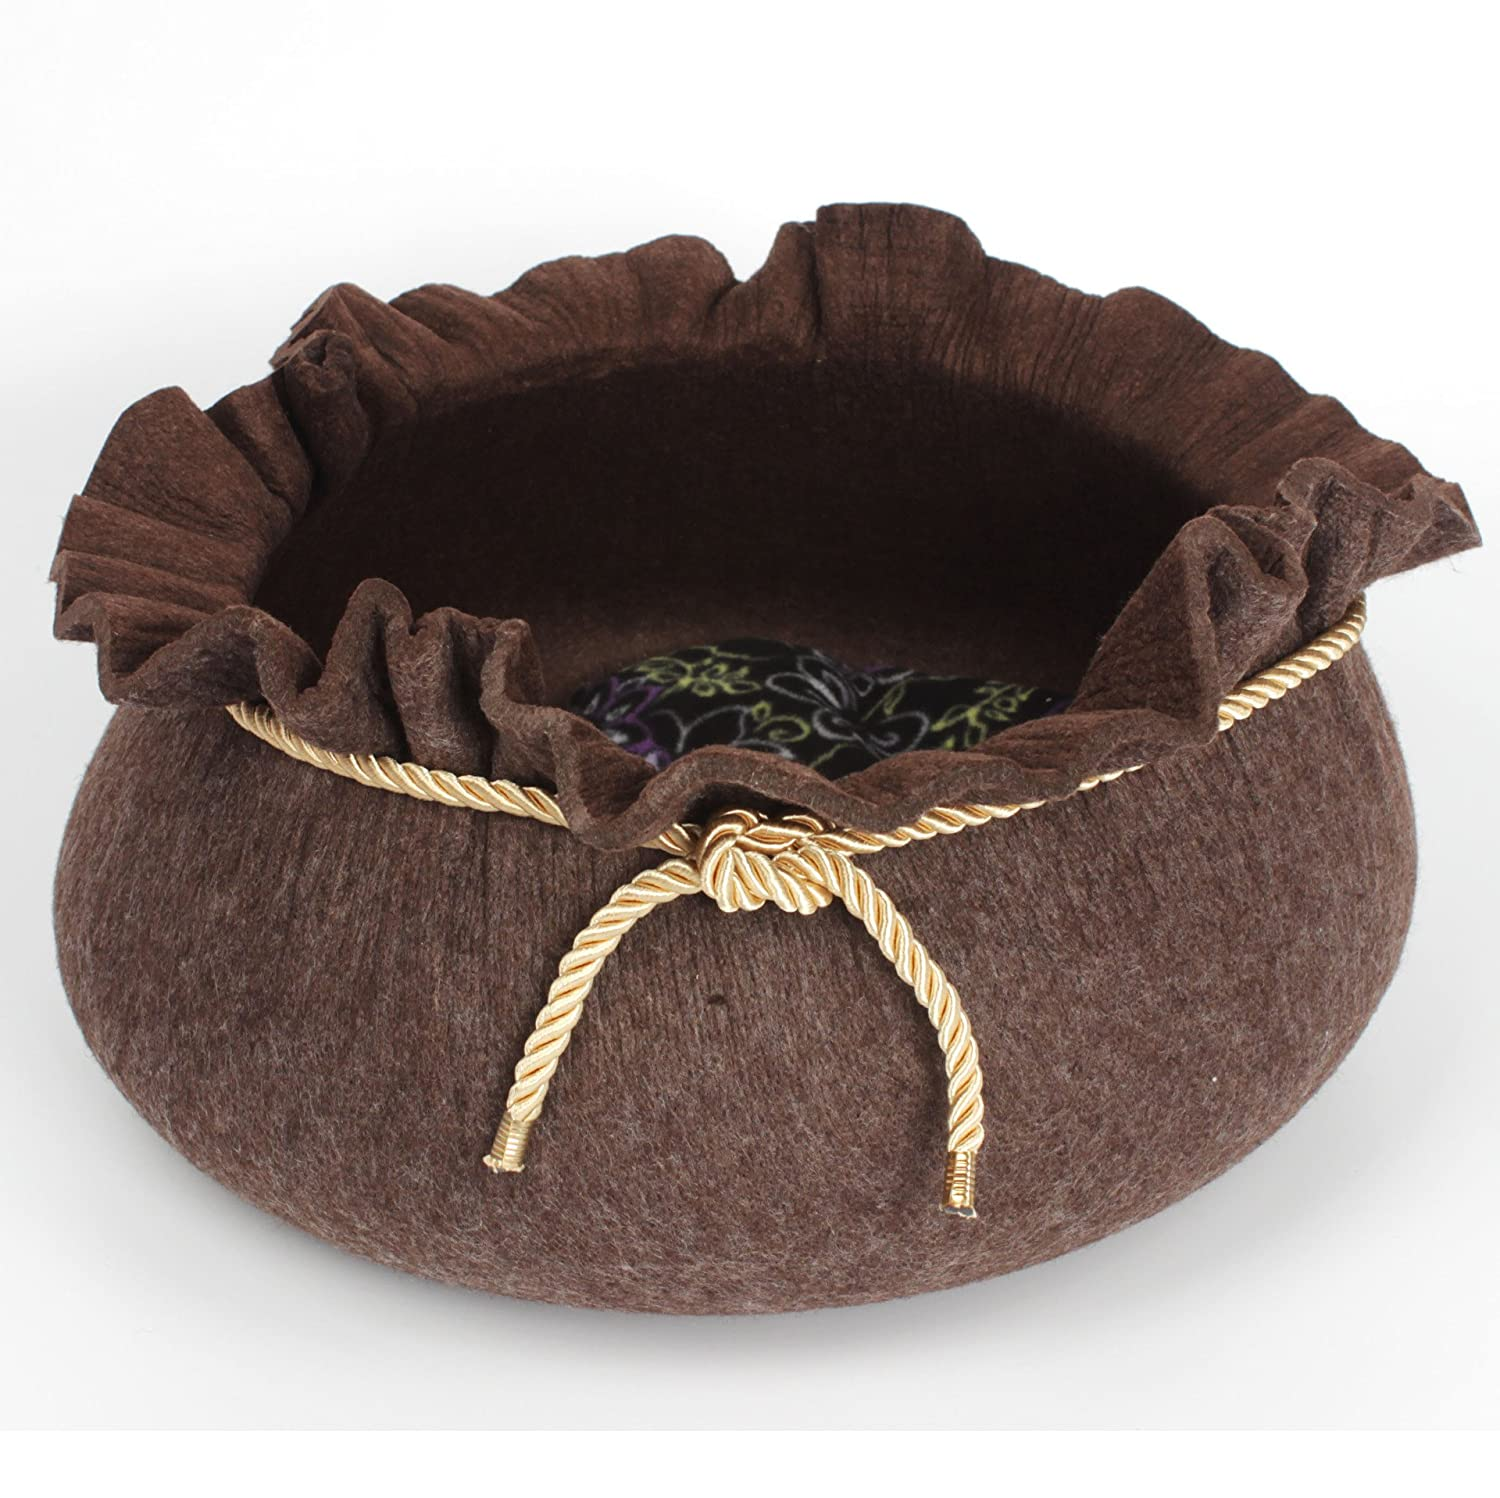 Pet Online Dog bed round felt small dog and cat nest durable cute warm pet supplies